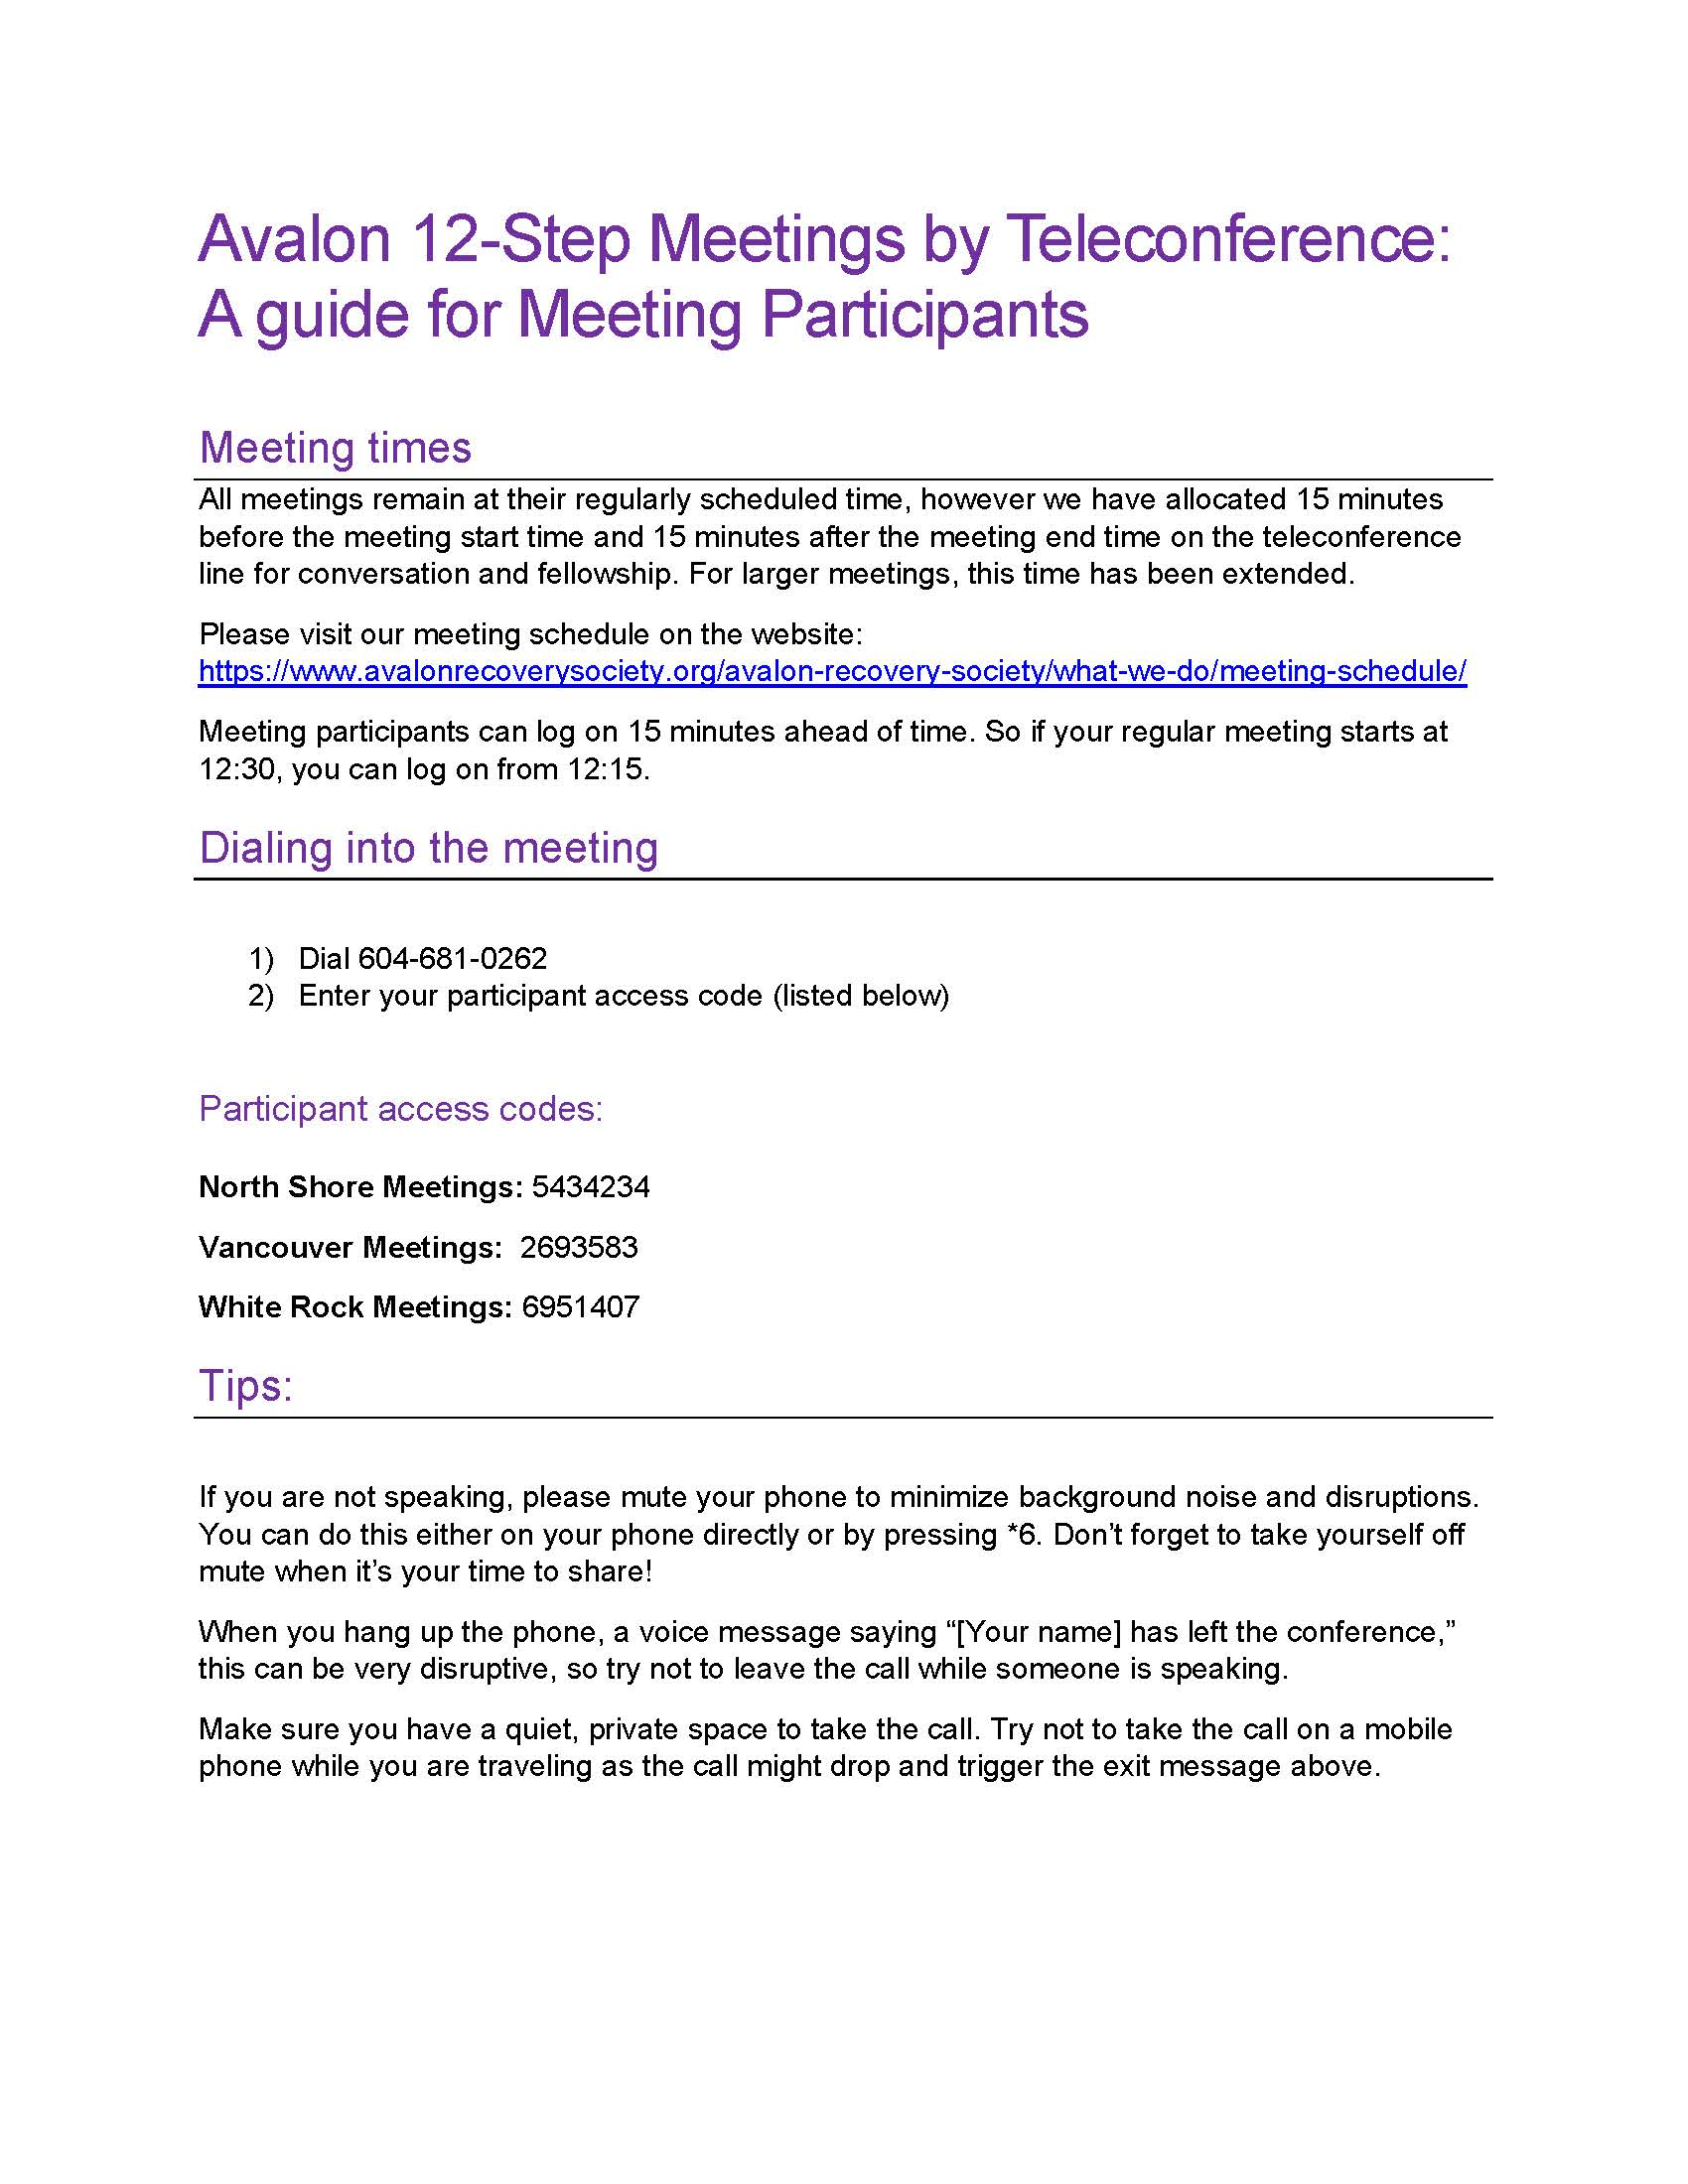 Guide for Meeting Participants